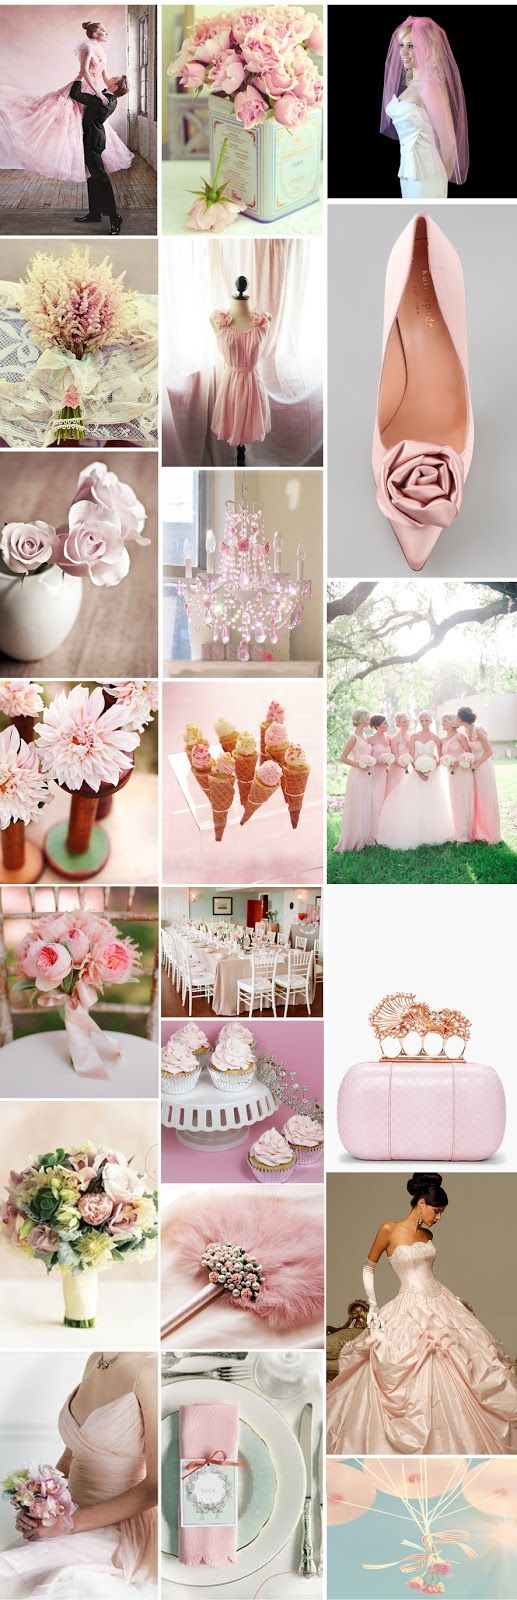 wedding ideas competitions best 25 january wedding colors ideas on 28089